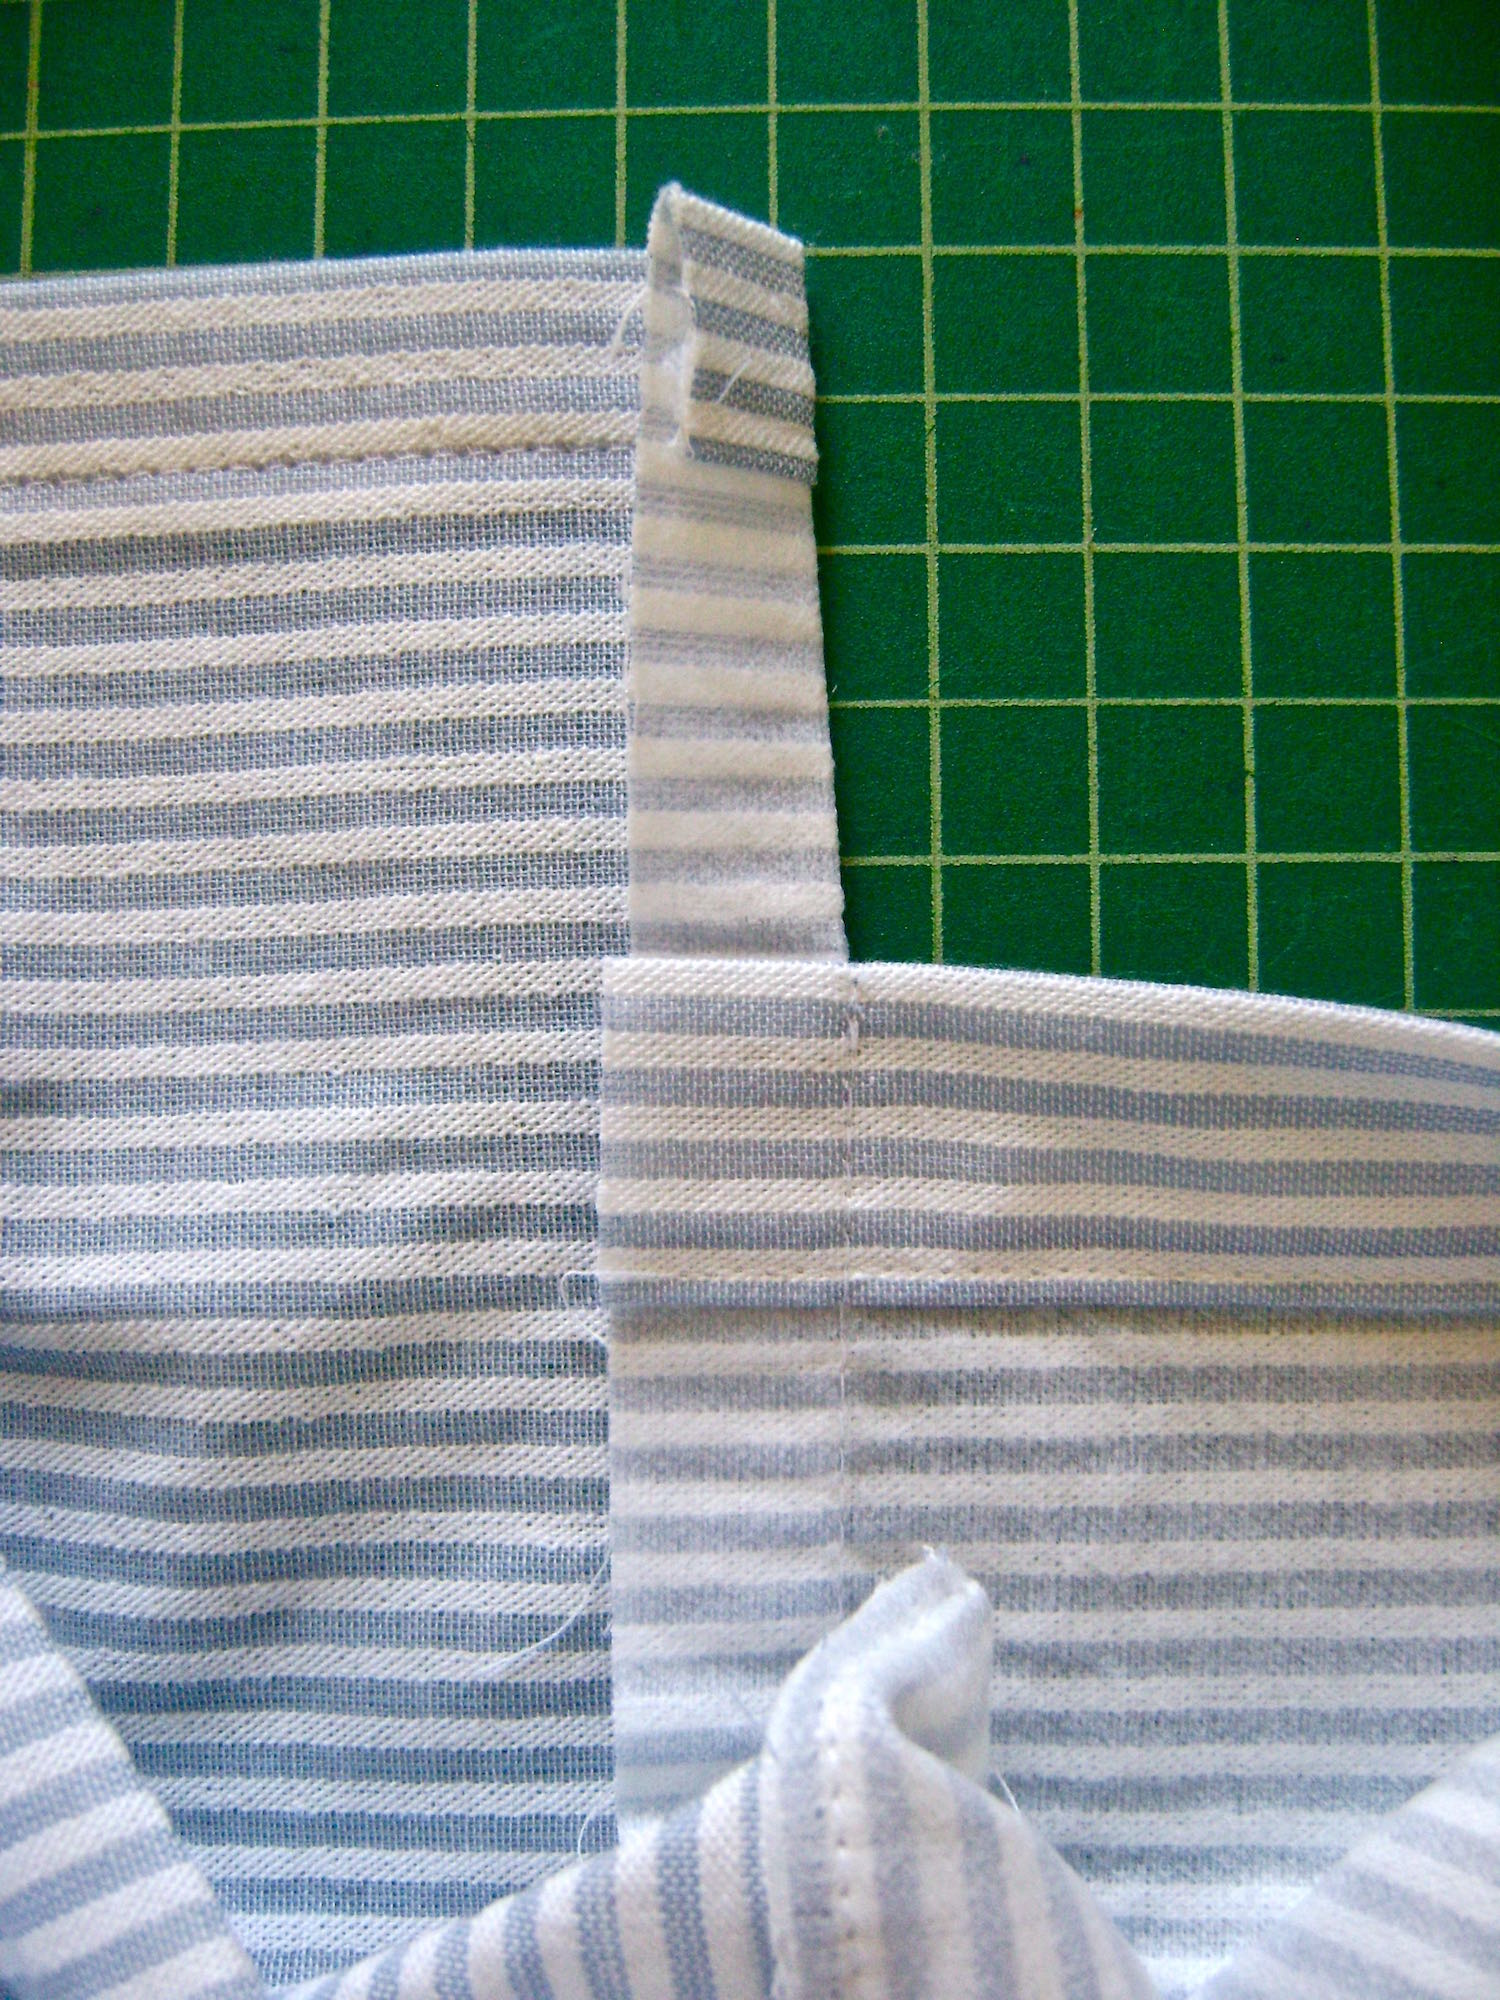 """step 11 - Press the side seams to the pocket back. Trim the seam allowance to one quarter inch. Turn the pocket right side out. Top stitch across the bottom 3/8"""" from edge."""